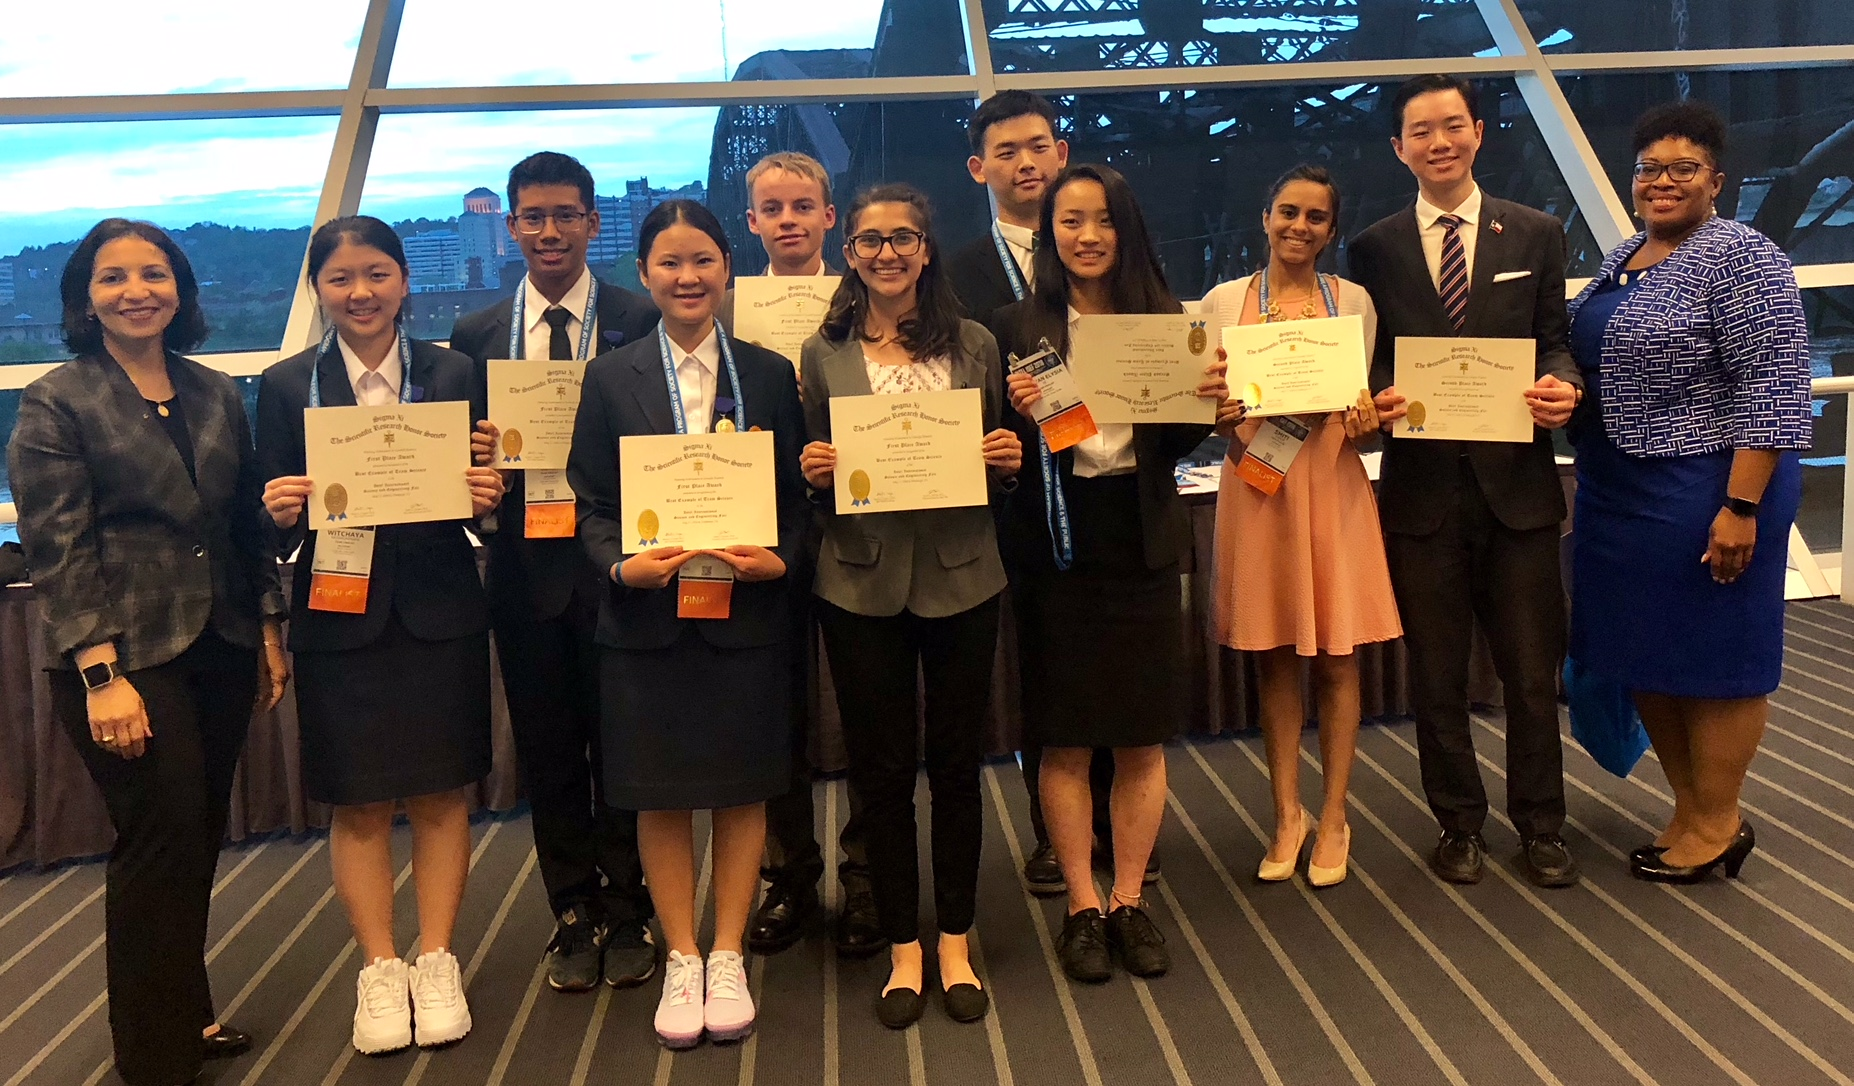 Intel ISEF 2018 Sigma Xi Special Awards Winners